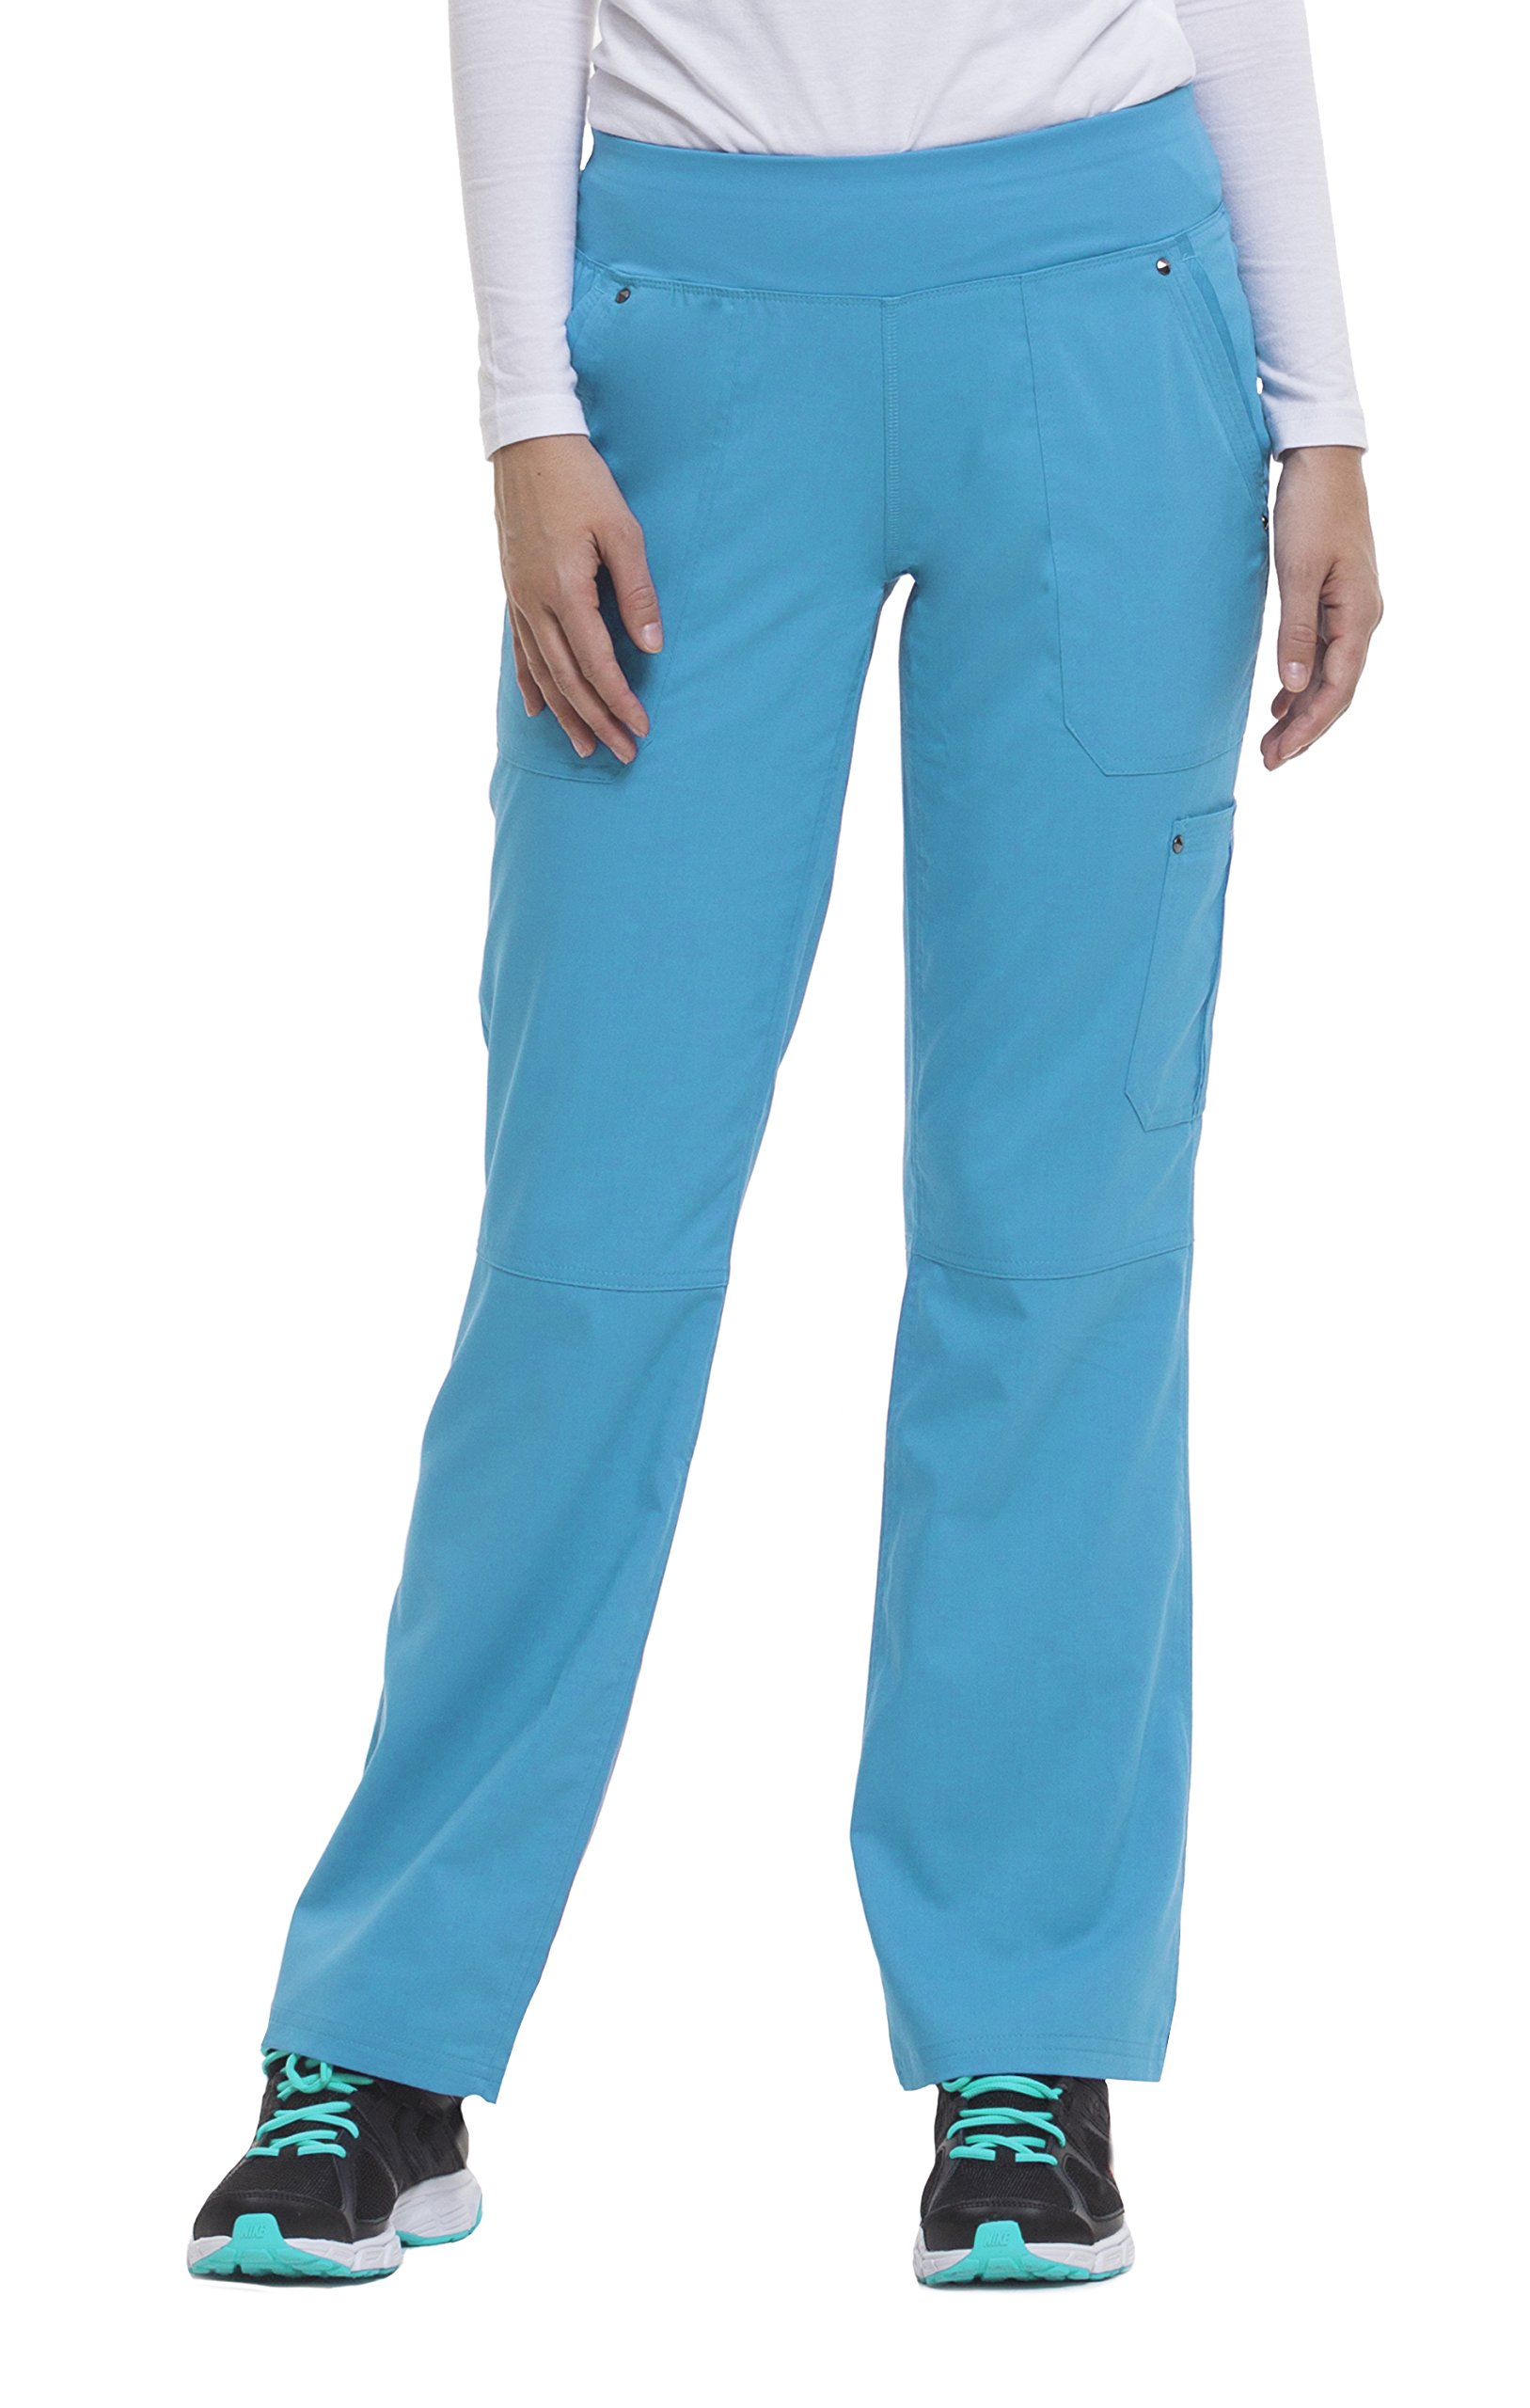 healing hands Purple Label Yoga Women's Tori 9133 5 Pocket Knit Waist Pant Cool Blue-XXXXX-Large